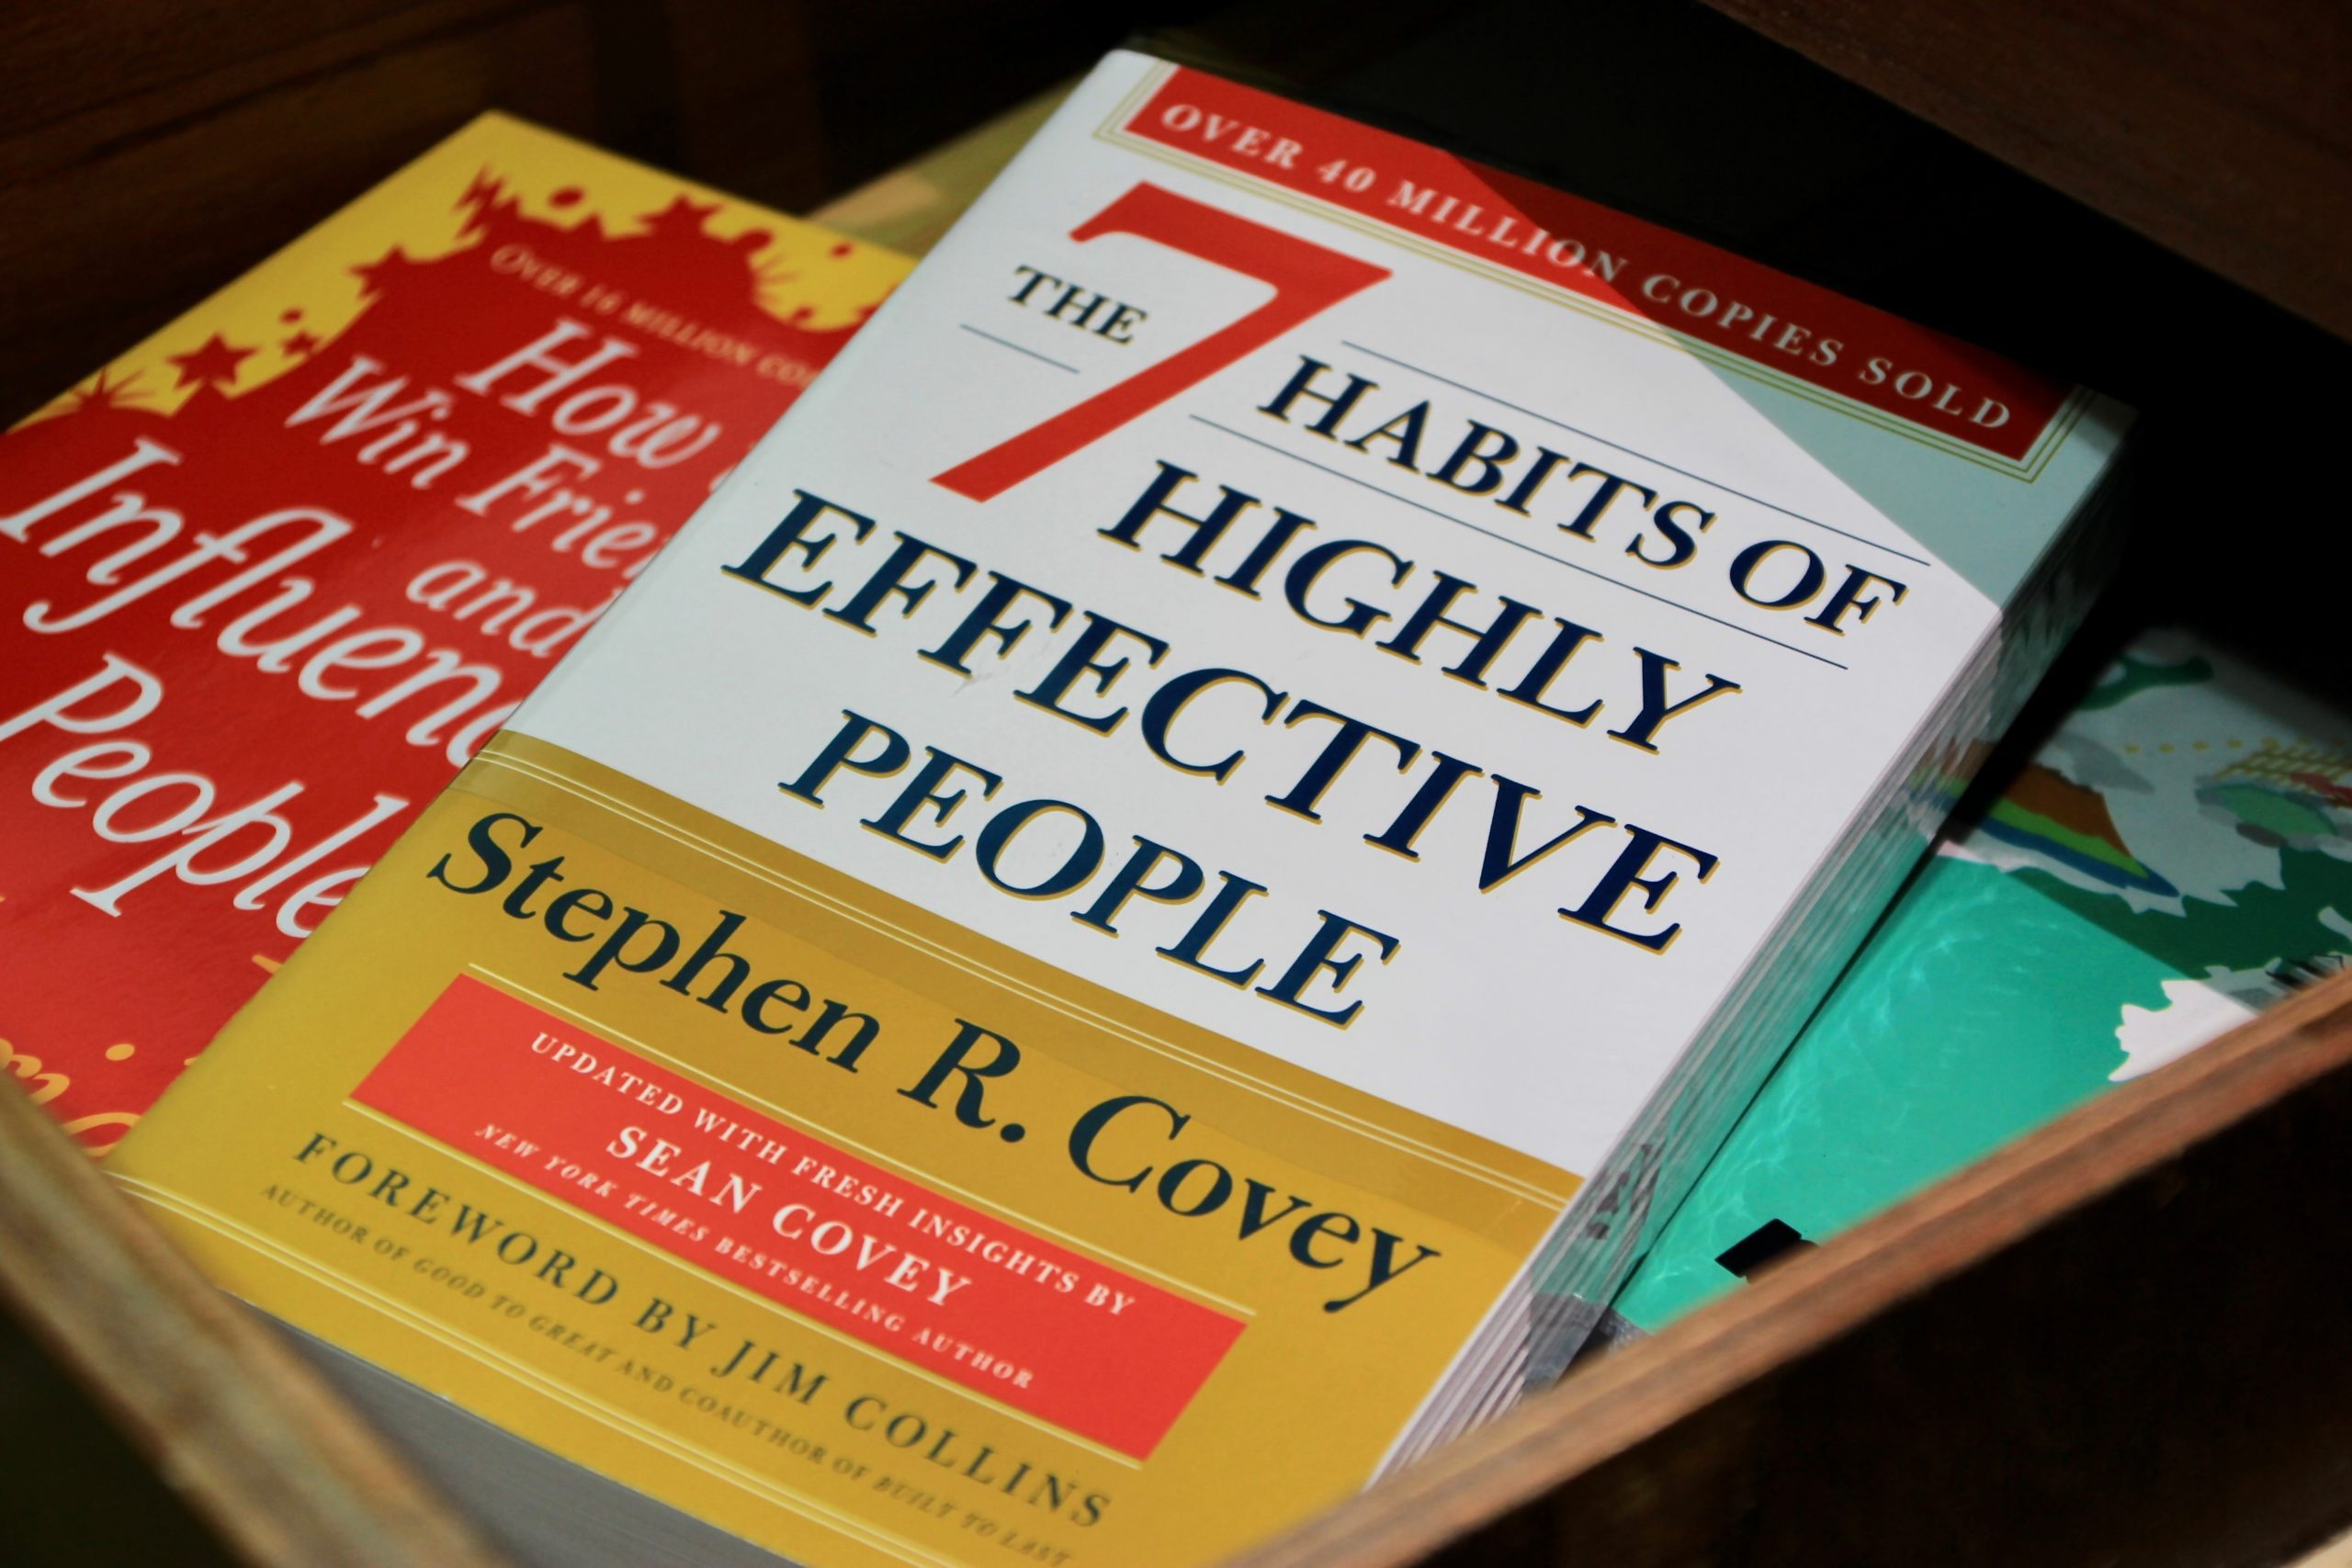 Image of The 7 Habits of Highly Effective People by Stephen Covey. Leadership and Entrepreneurship